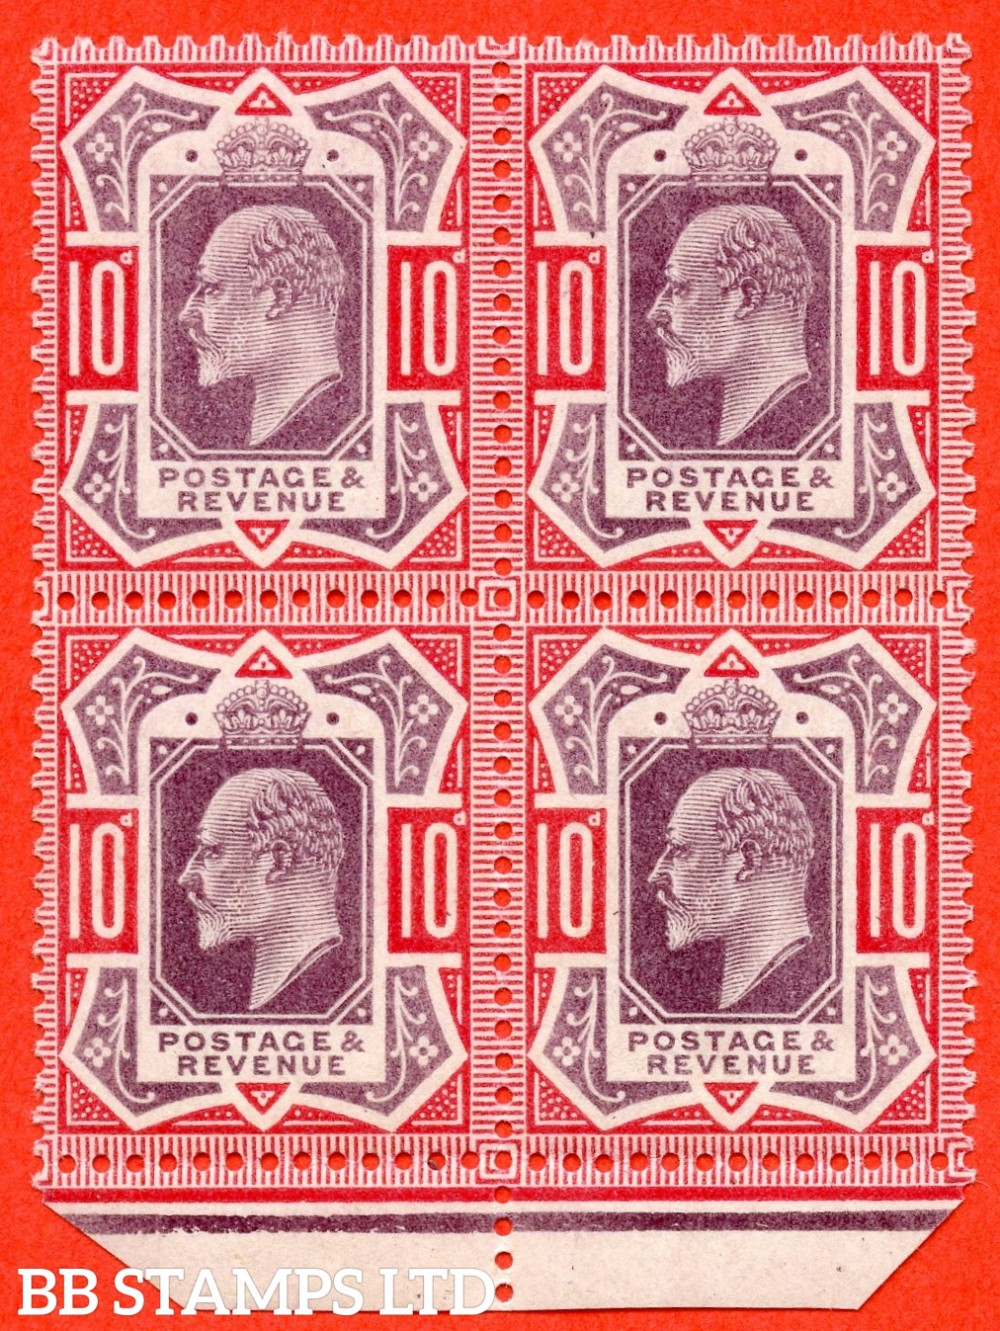 SG. 254 Variety M42 (3). 10d Slate Purple & Carmine Pink. A very fine UNMOUNTED MINT small part bottom marginal block of 4 of this scarce Edwardian shade variety complete with Brandon certificate.